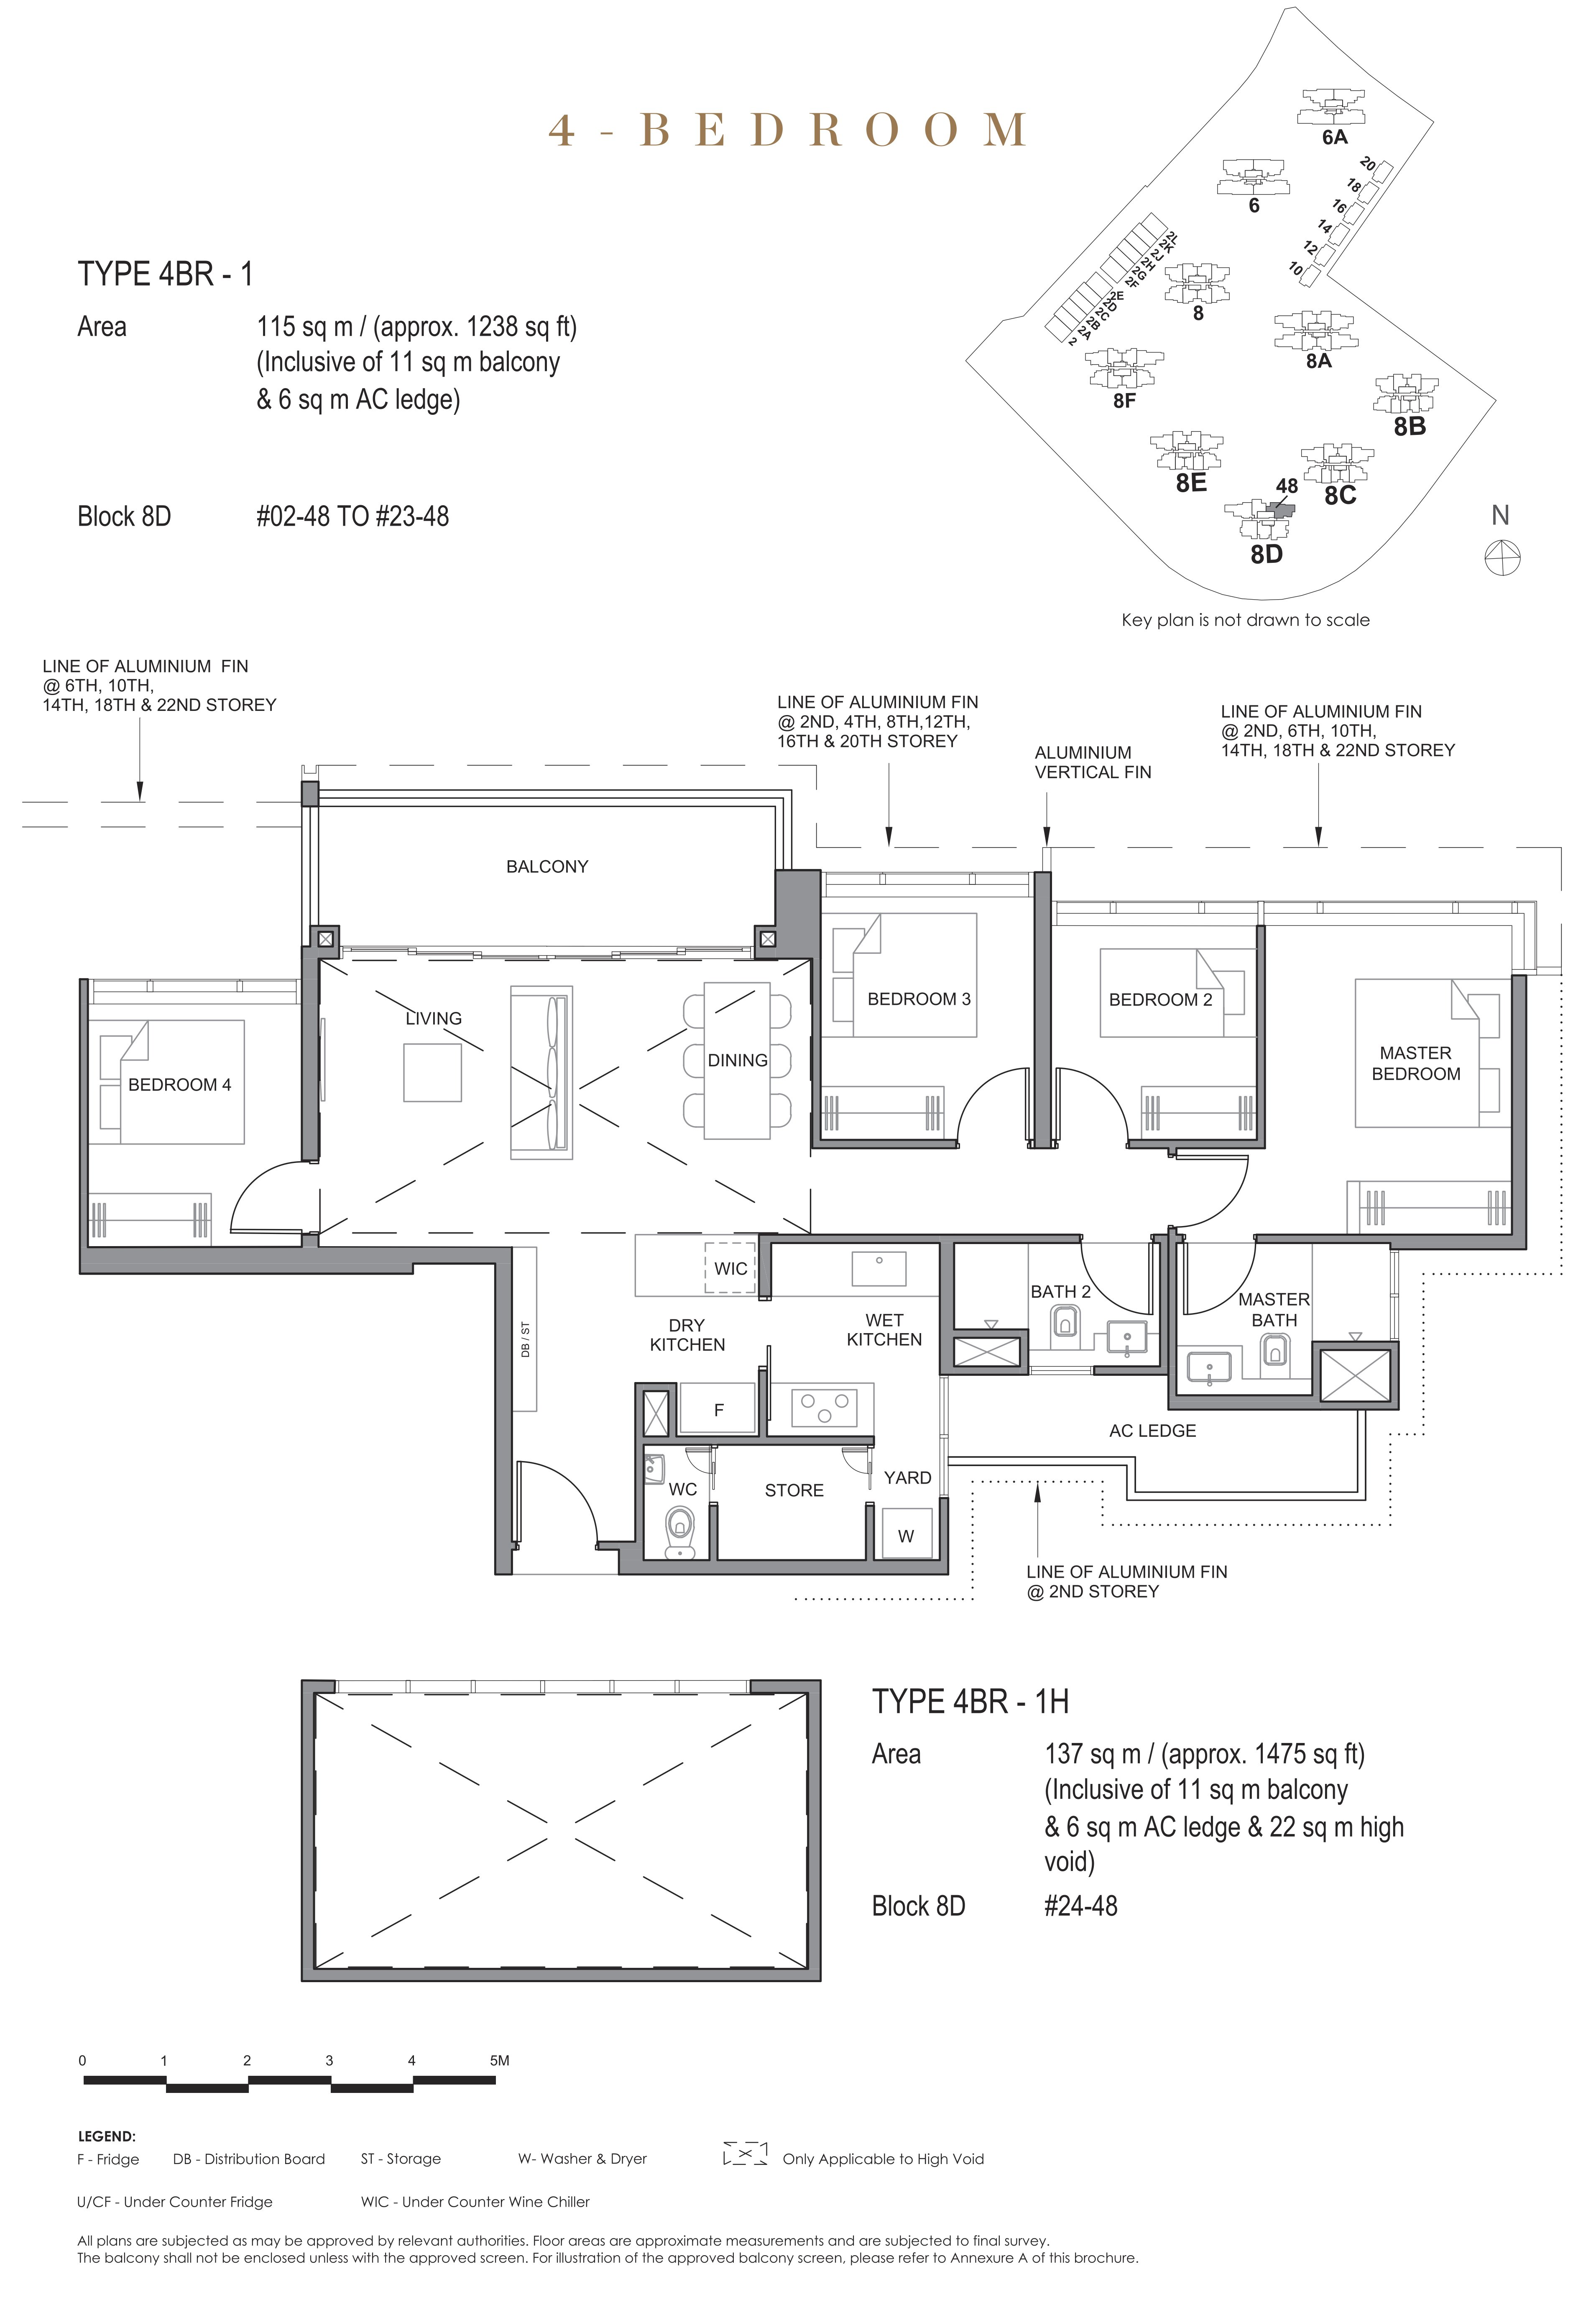 Parc Clematis 锦泰门第 contemporary 4 bedroom 4卧房 4 BR-1